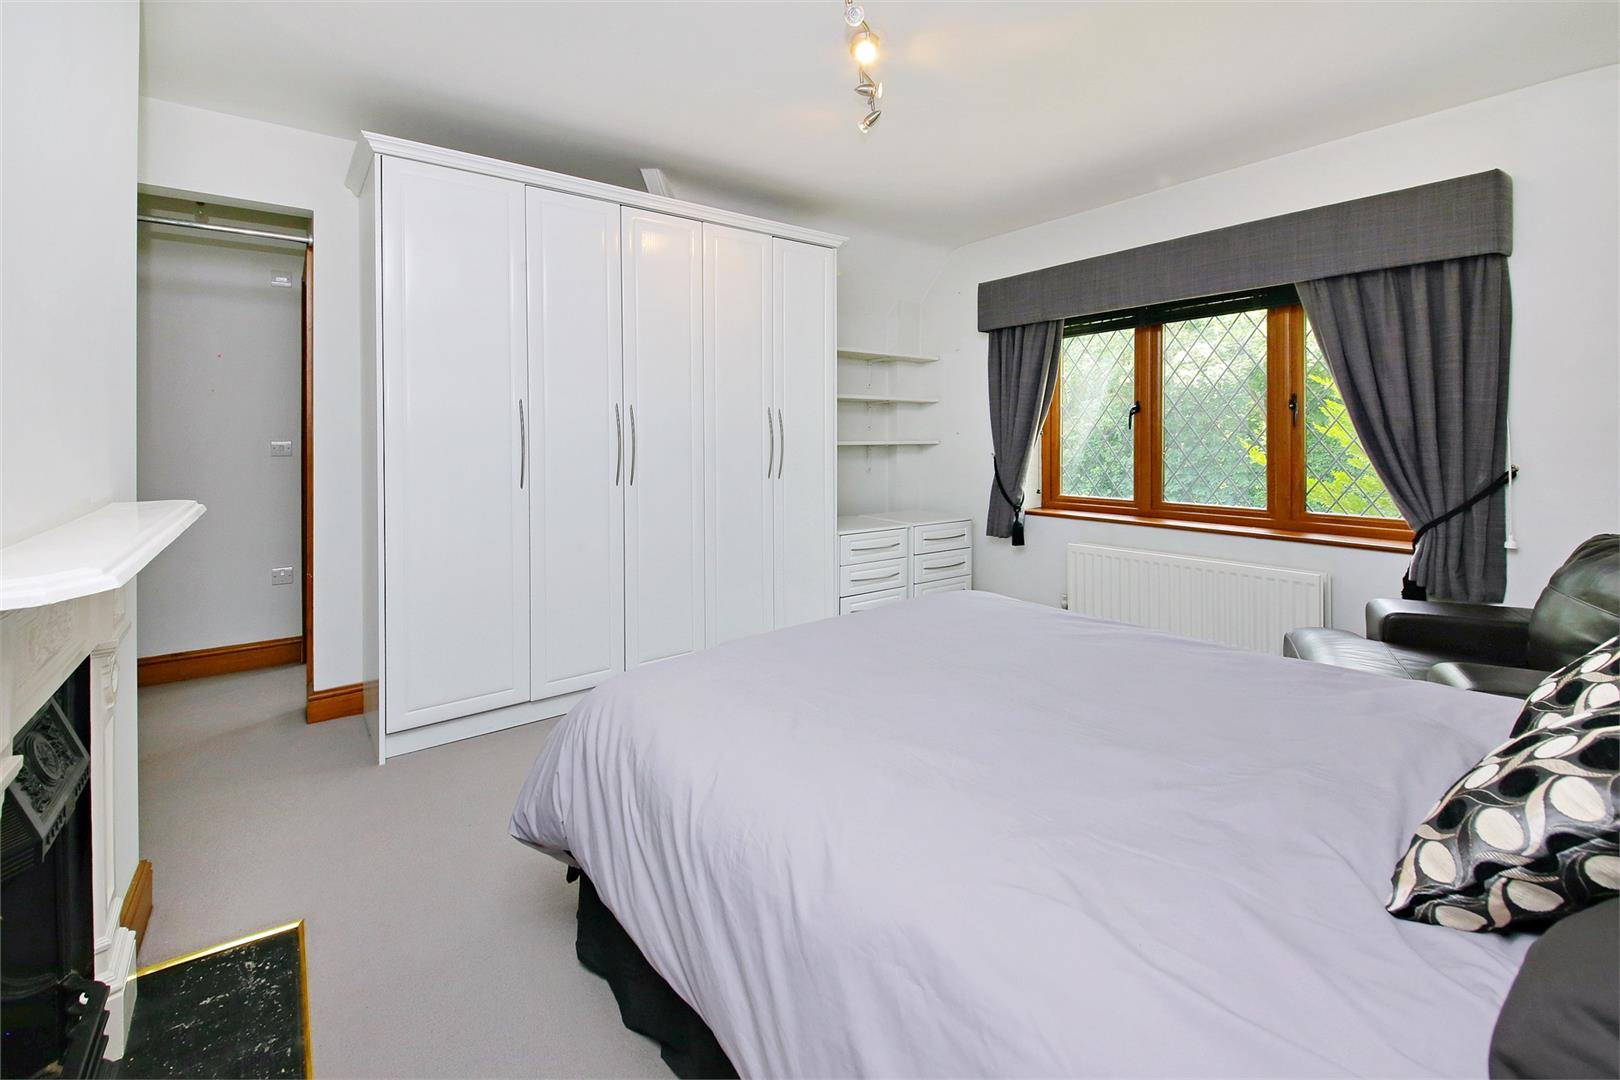 6 bed to rent in Elstree - (Property Image 8)